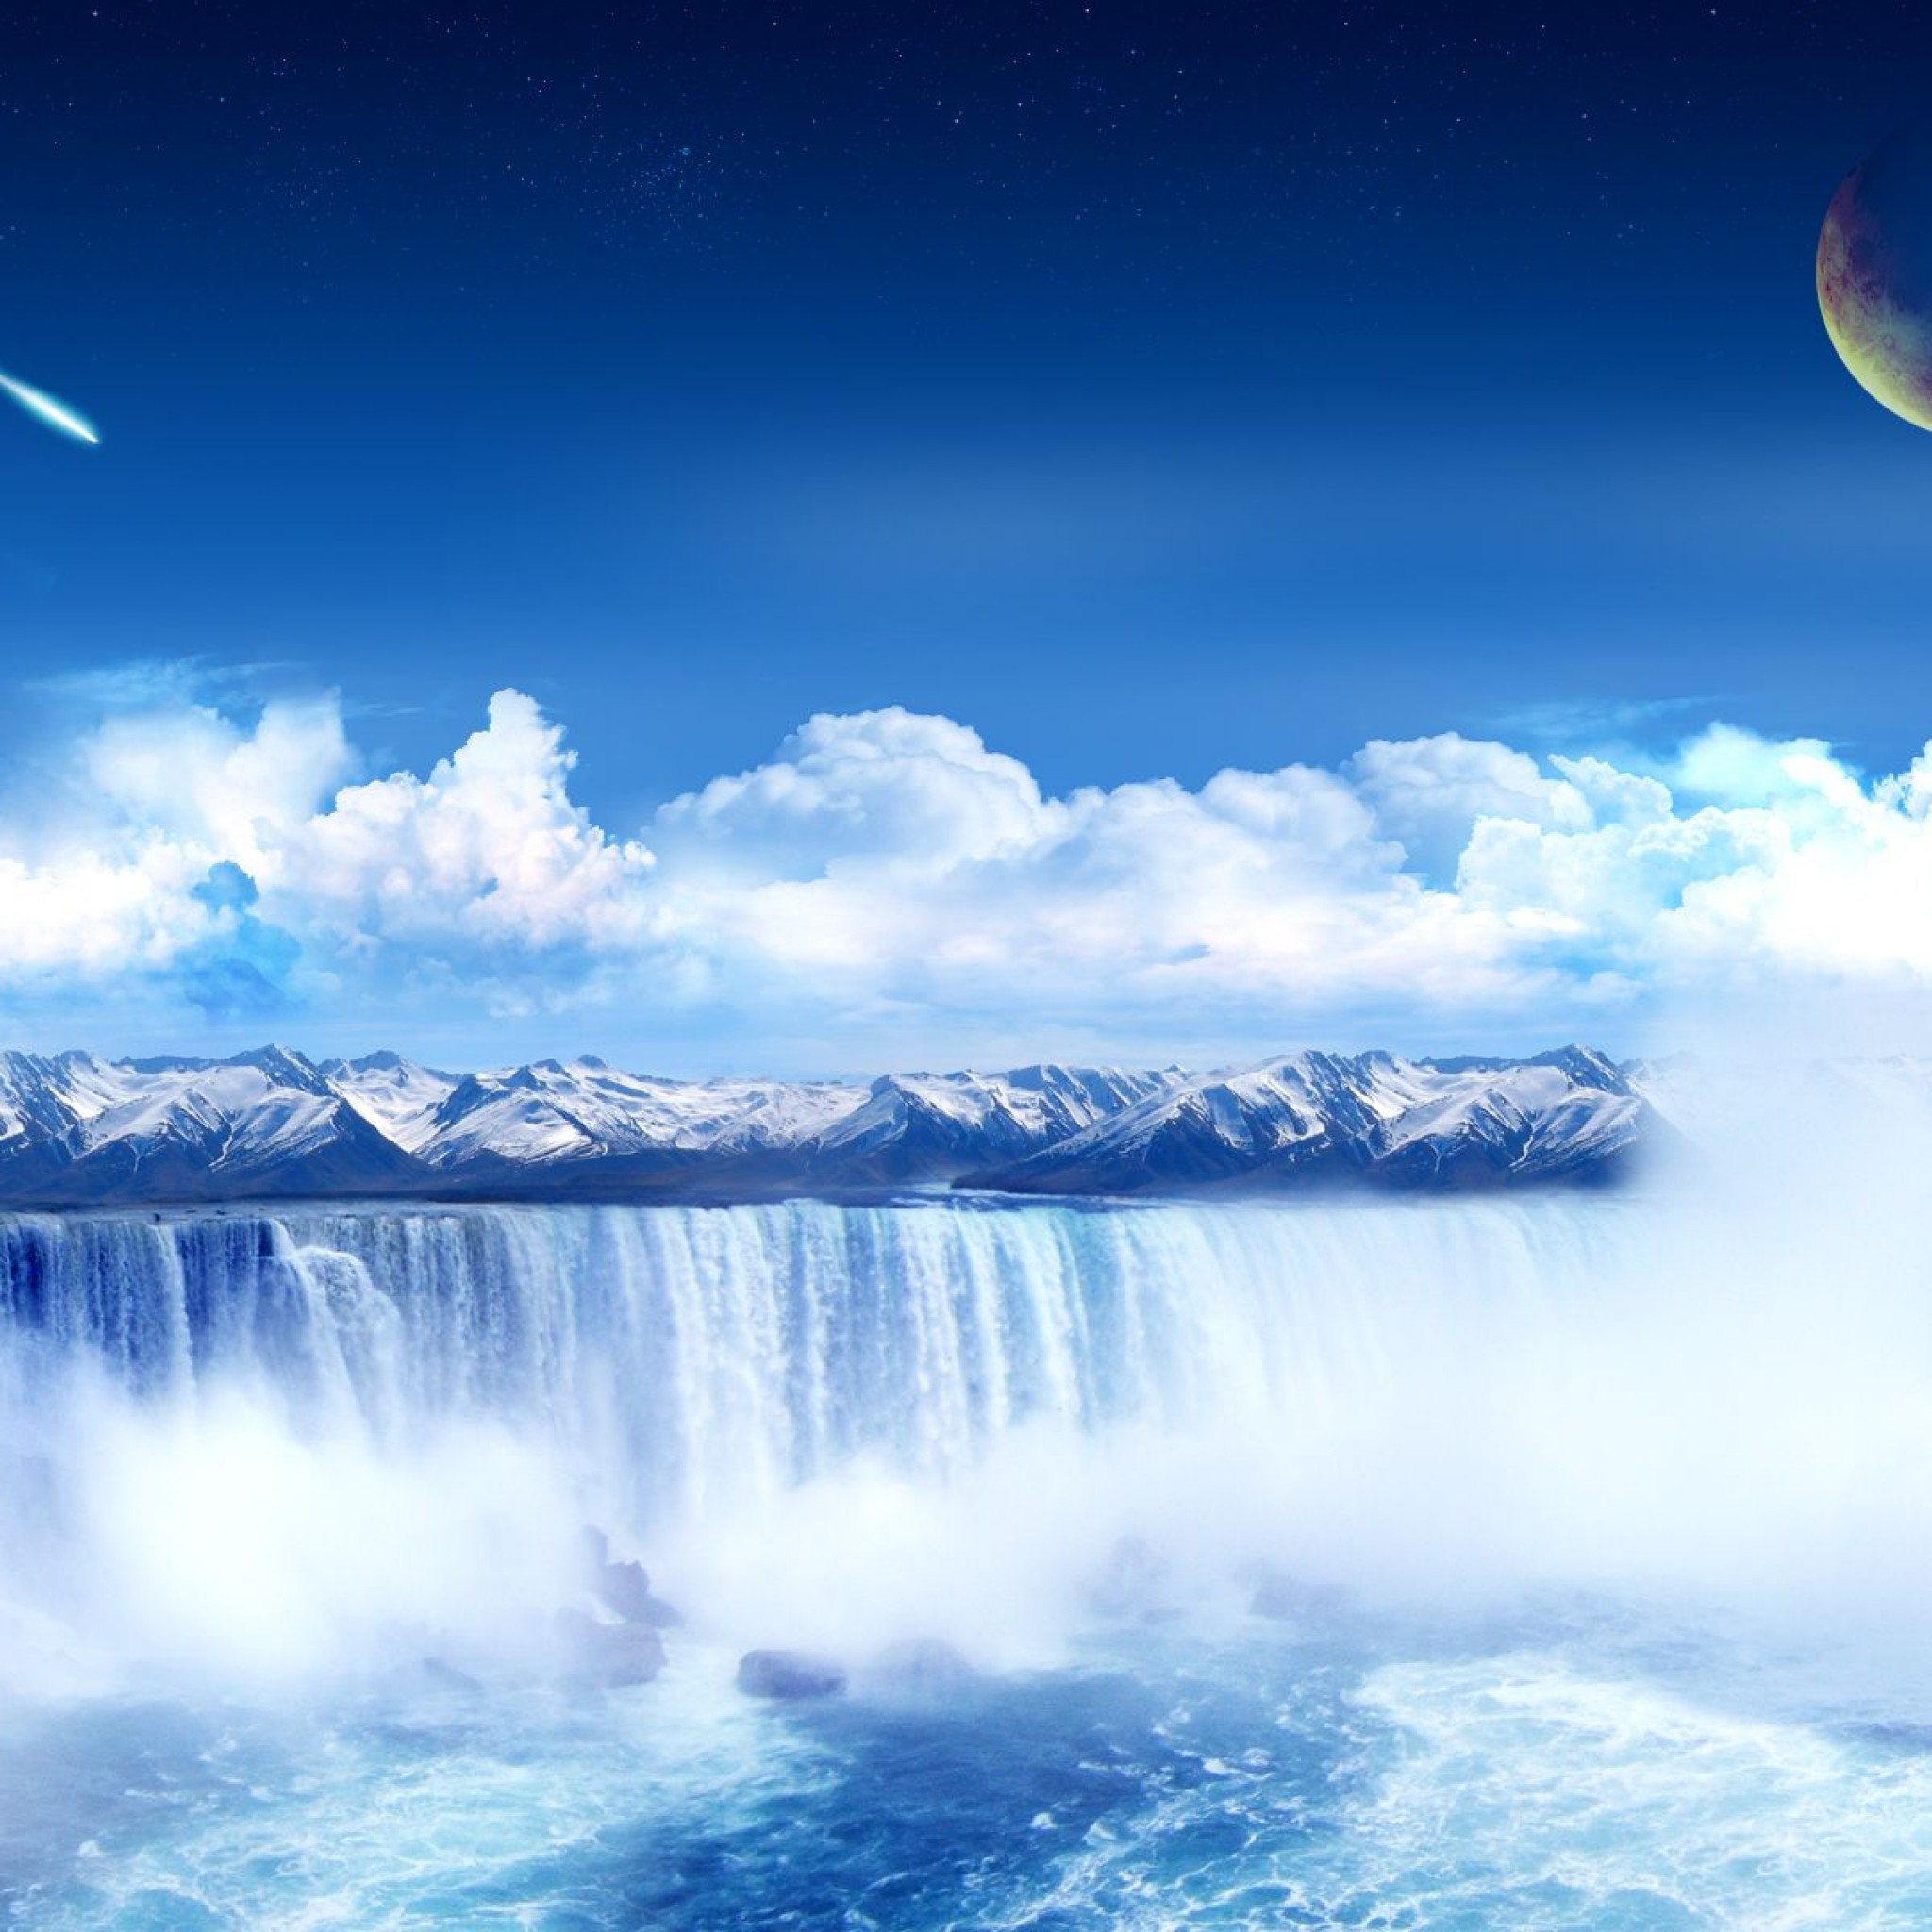 the best niagara falls bluechamelon pictures image free